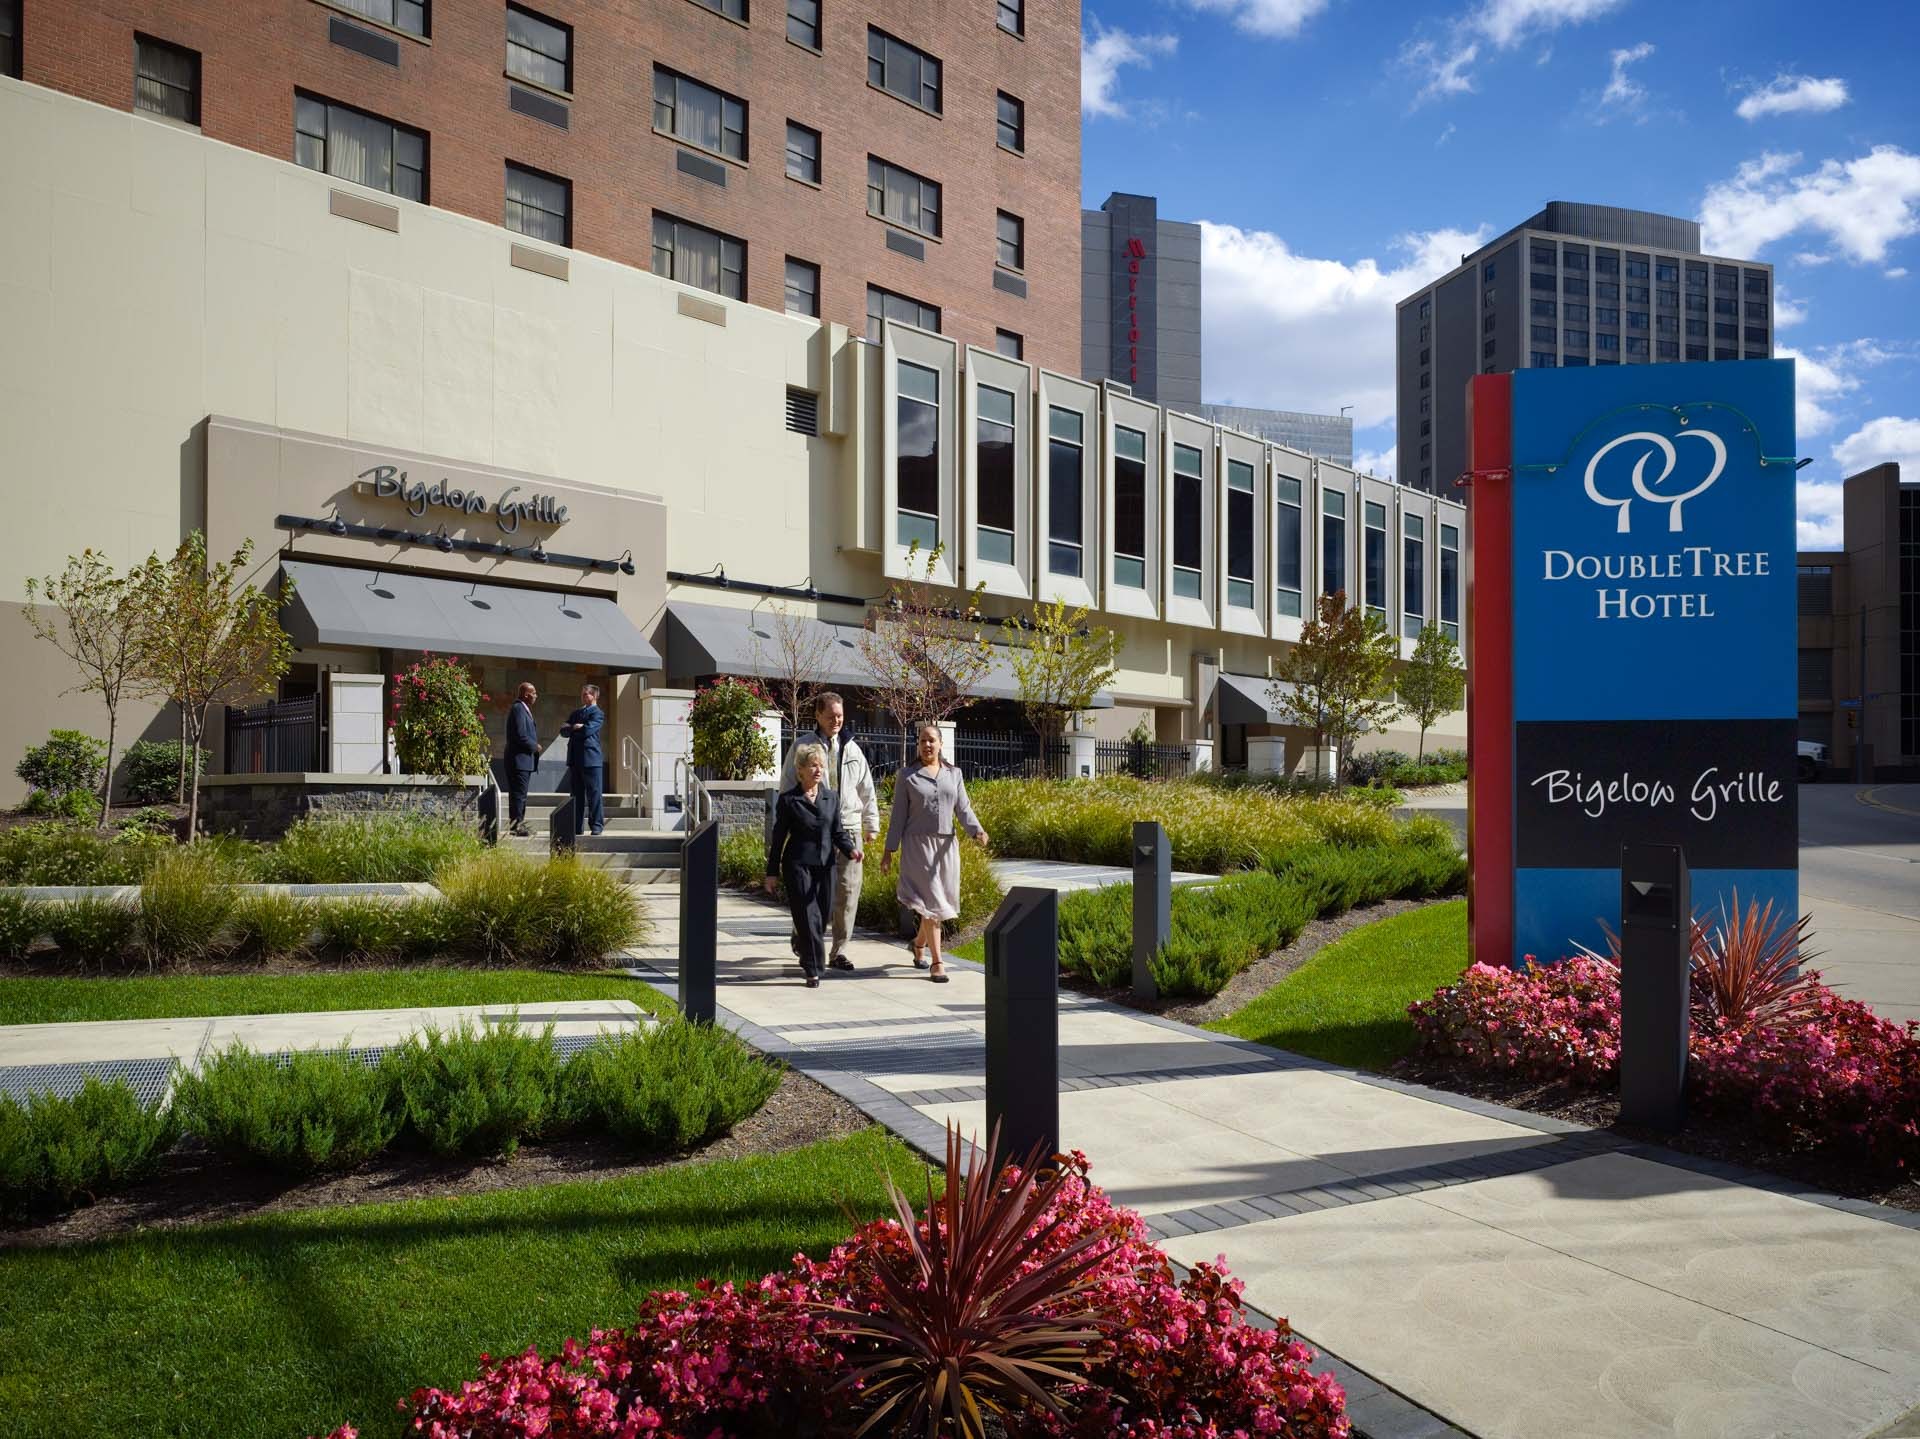 One Bigelow Square, Downtown Pittsburgh - Elmhurst Group on university of pittsburgh oakland campus map, downtown dallas map, pittsburgh county map, downtown pittsburgh parking lot map, hotels magnificent mile map, pittsburgh street map, pittsburgh ohio river map, pittsburgh on map, bike pittsburgh map, downtown pittsburgh attractions map, detailed downtown pittsburgh map, hotels ann arbor map, pittsburgh downtown building map, parking garages downtown pittsburgh map, pittsburgh pa city map, st. louis mo map, hotels las vegas strip map, shopping downtown pittsburgh map, printable downtown pittsburgh map, pittsburgh pa airport map,